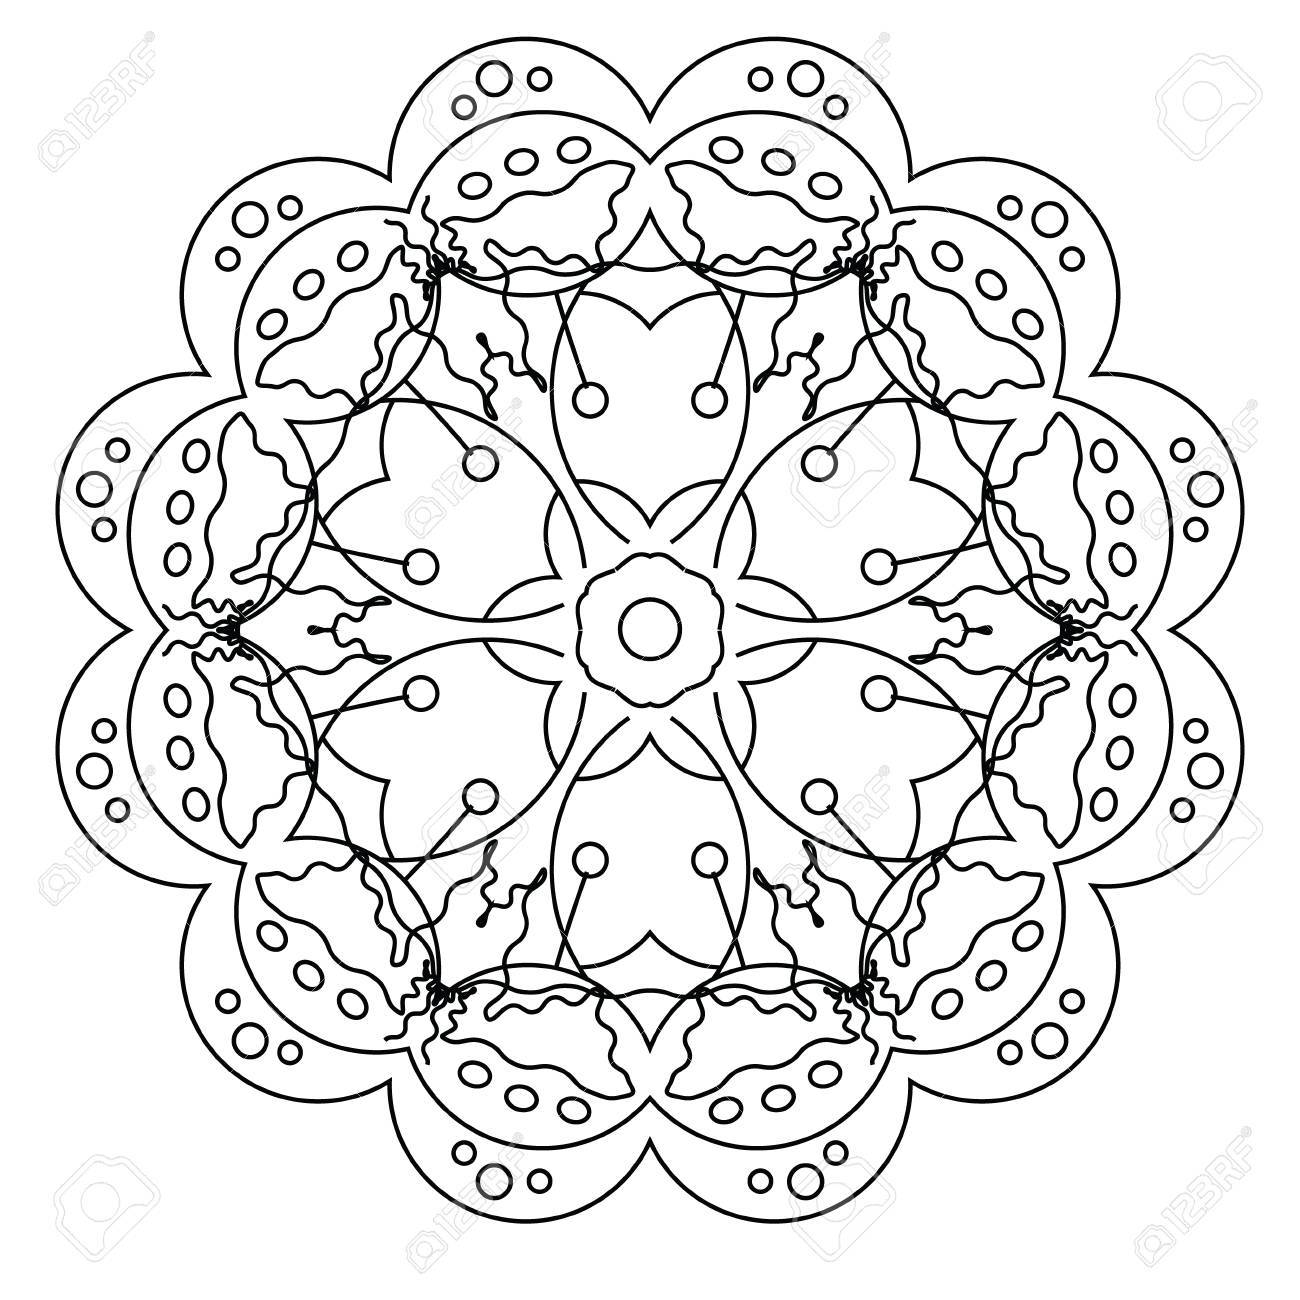 Relaxing Coloring Page With Vector Mandala For Kids And Adult ...